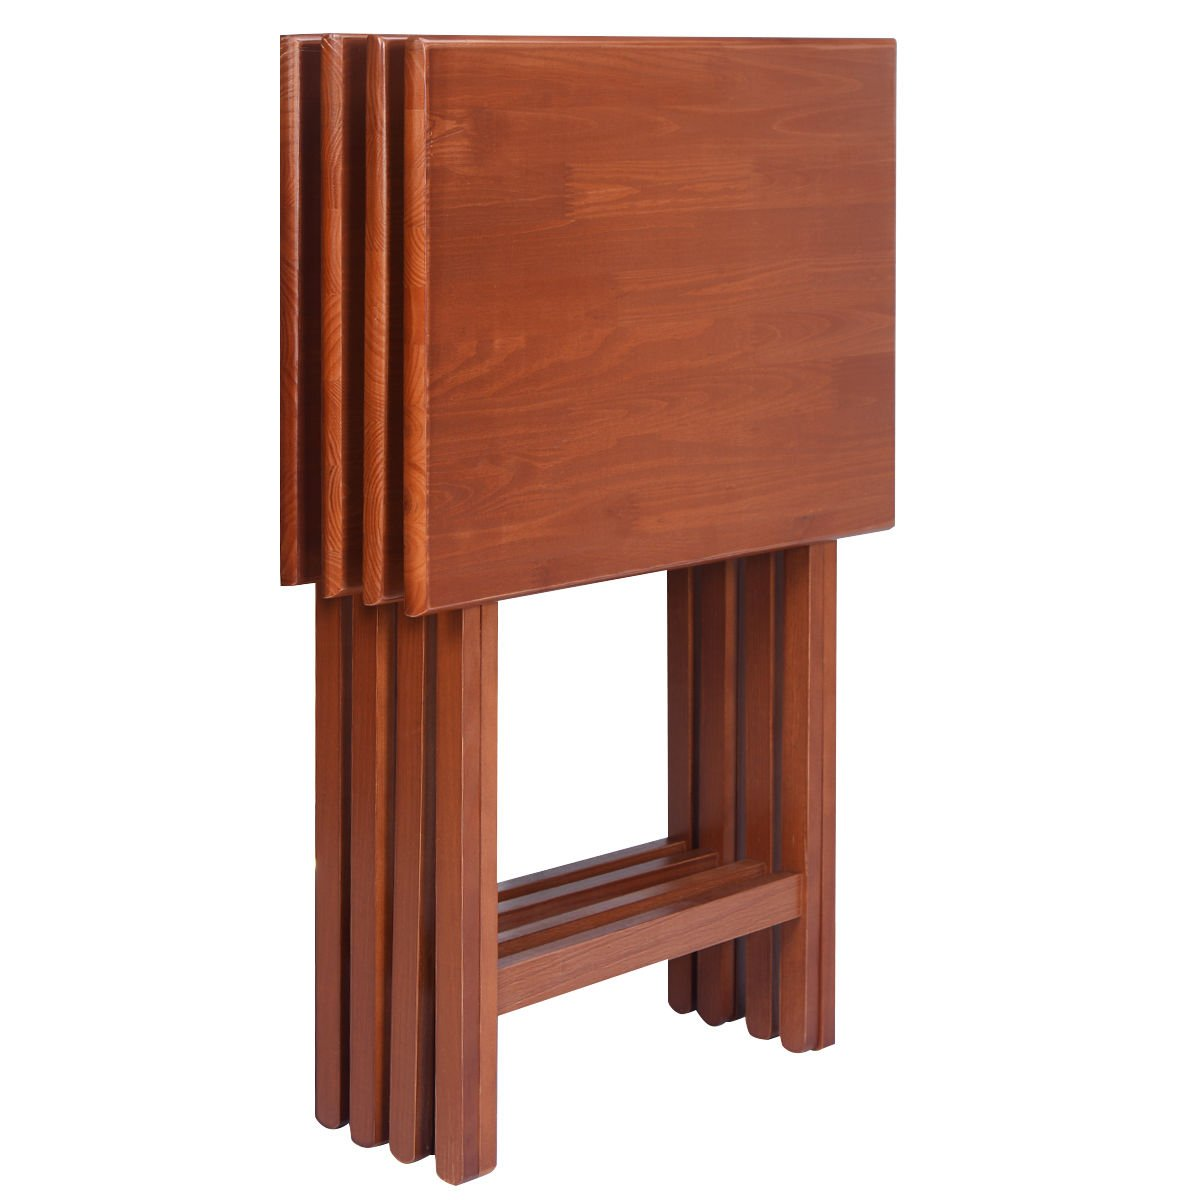 Set of 4 Portable Wood TV Table Folding Tray Desk Serving Furniture Walnut New by Asher Amada (Image #3)